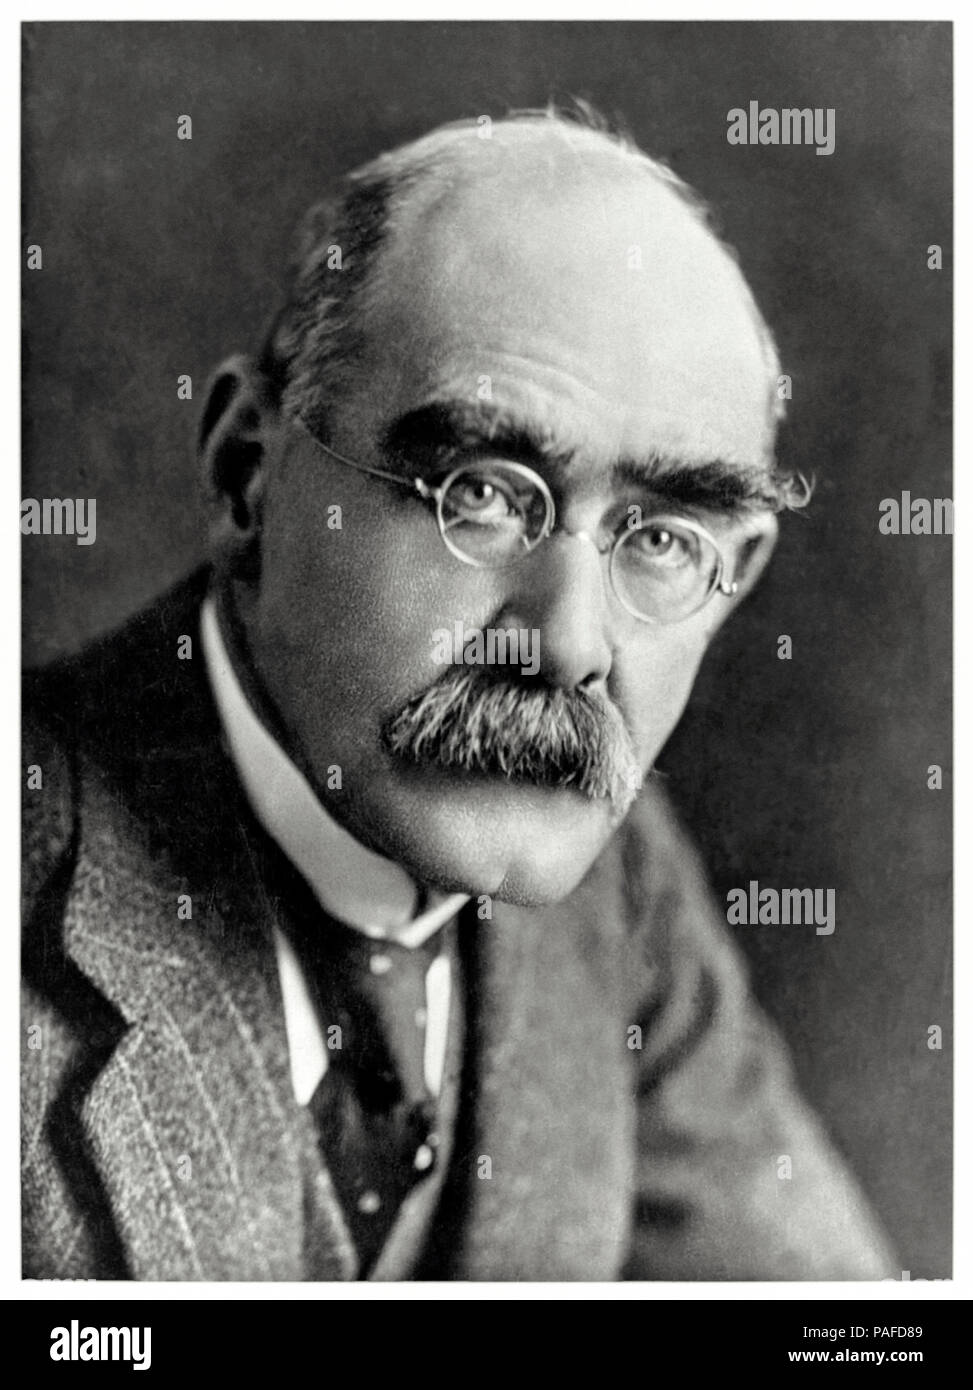 Rudyard Kipling (1865-1936) English writer best remembered for his poems, the 'Just So Stories' and 'The Jungle Book'. See more information below. - Stock Image